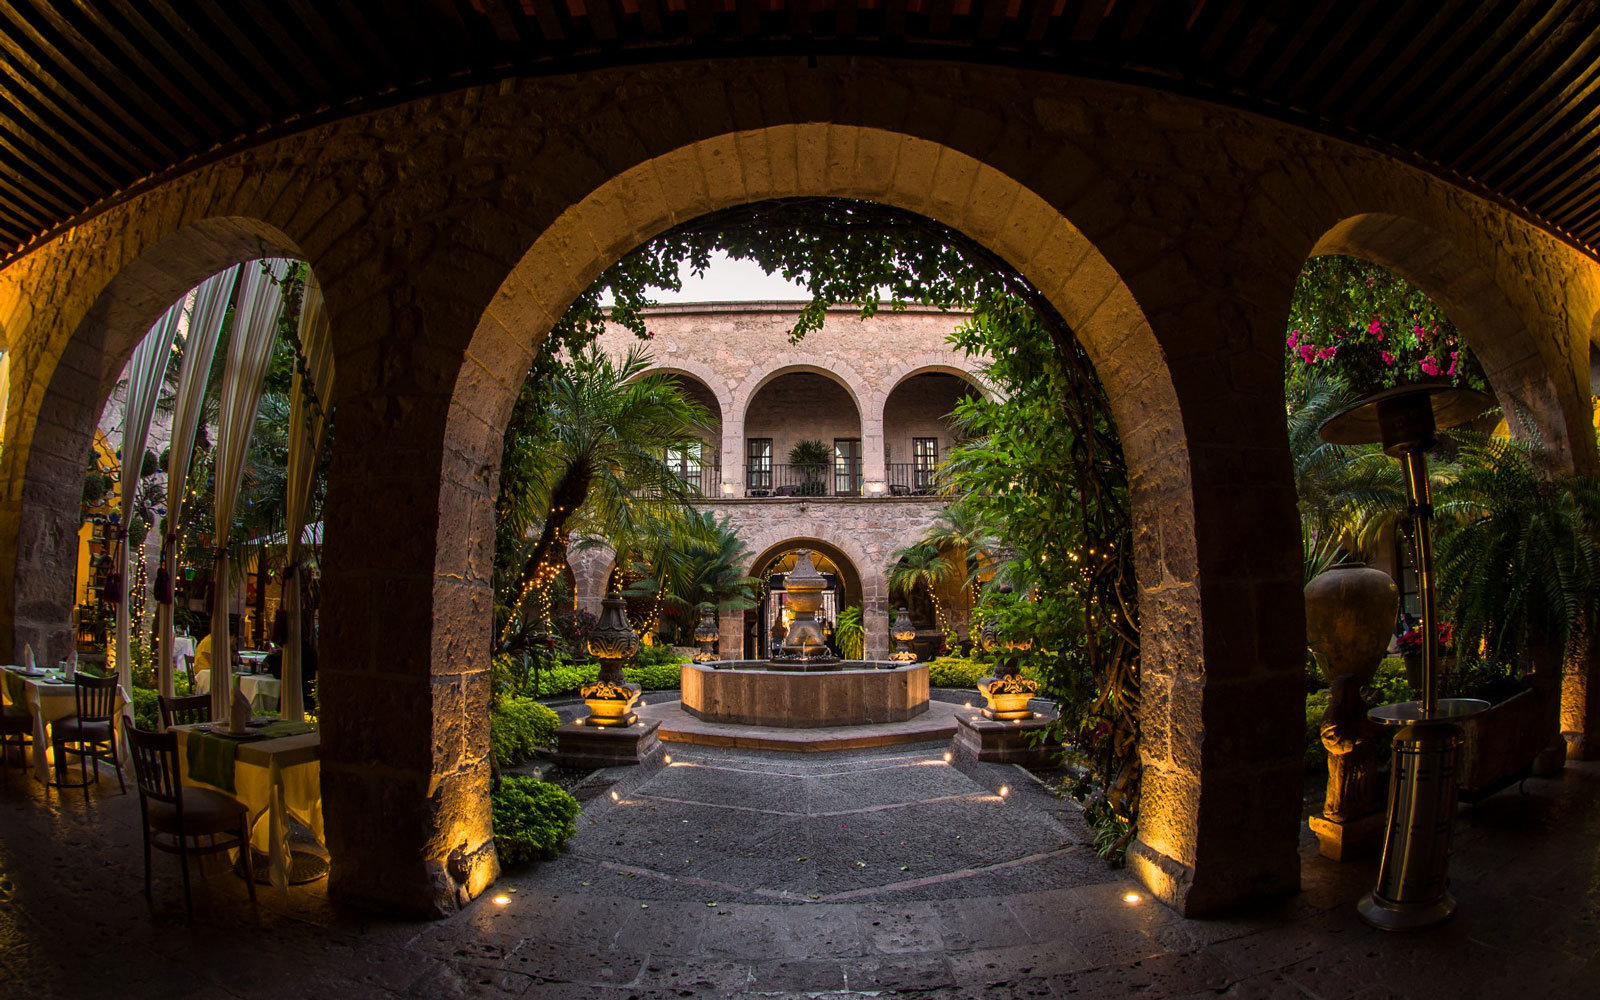 The Hotel de la Soledad in Morelia, Mexico.